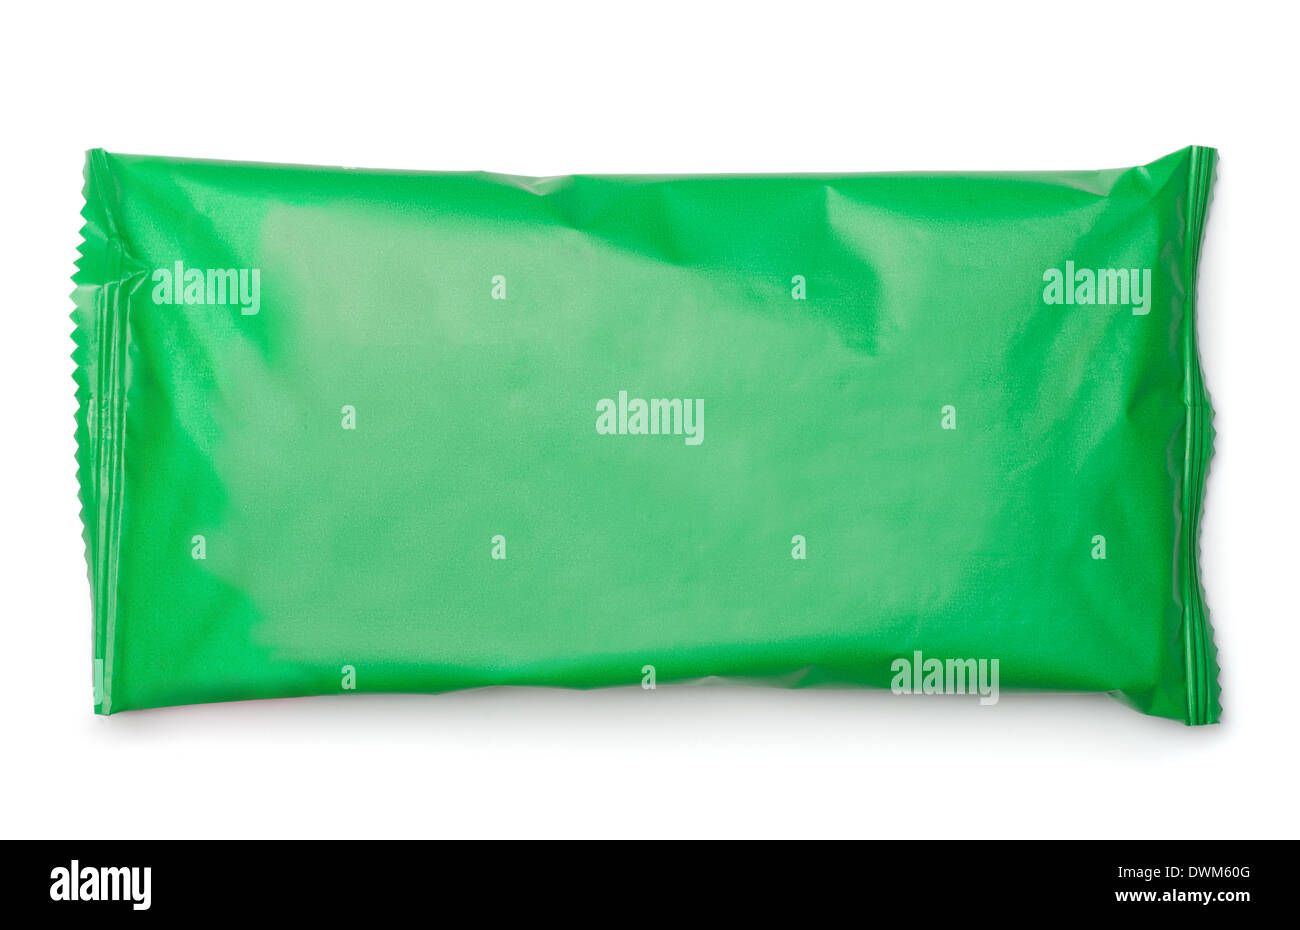 Green food package bag isolated on white - Stock Image